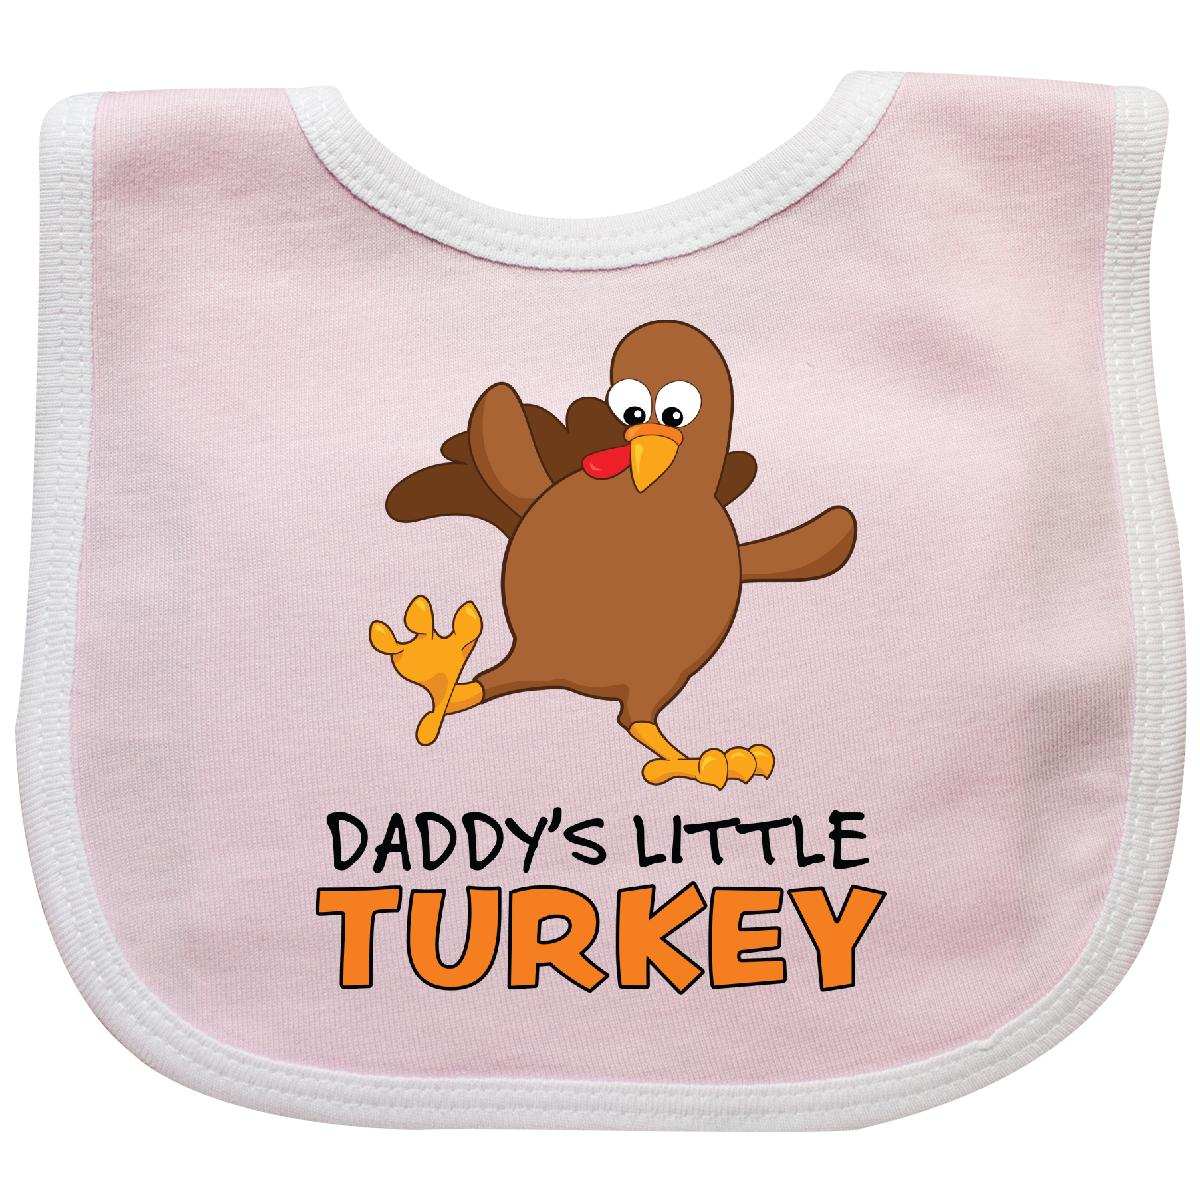 Inktastic Daddy's Little Turkey Baby Bib Thanksgiving Funny Feast Kids Child November Holiday Dancing Cute Adorable Sweet Kid Silly Goofy Son Daughter Dad Father Gift Clothing Infant